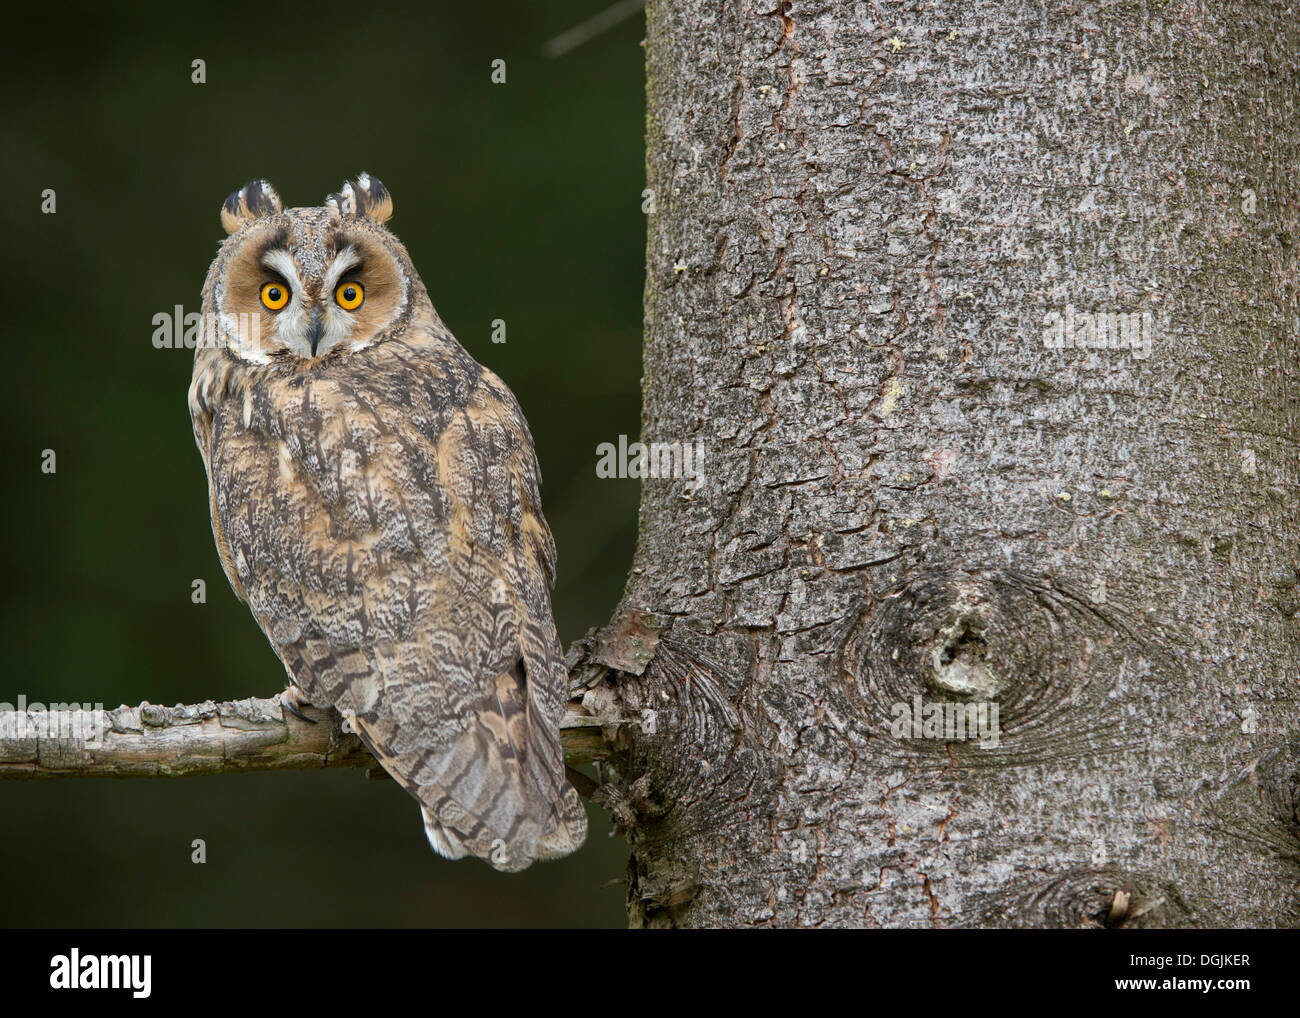 Long-eared Owl (Asio otus), Wittlich, Rhineland-Palatinate, NON EXCLUSIVE USAGE FOR CALENDAR, 2015, TERRITORY: NORTH AMERICA - Stock Image